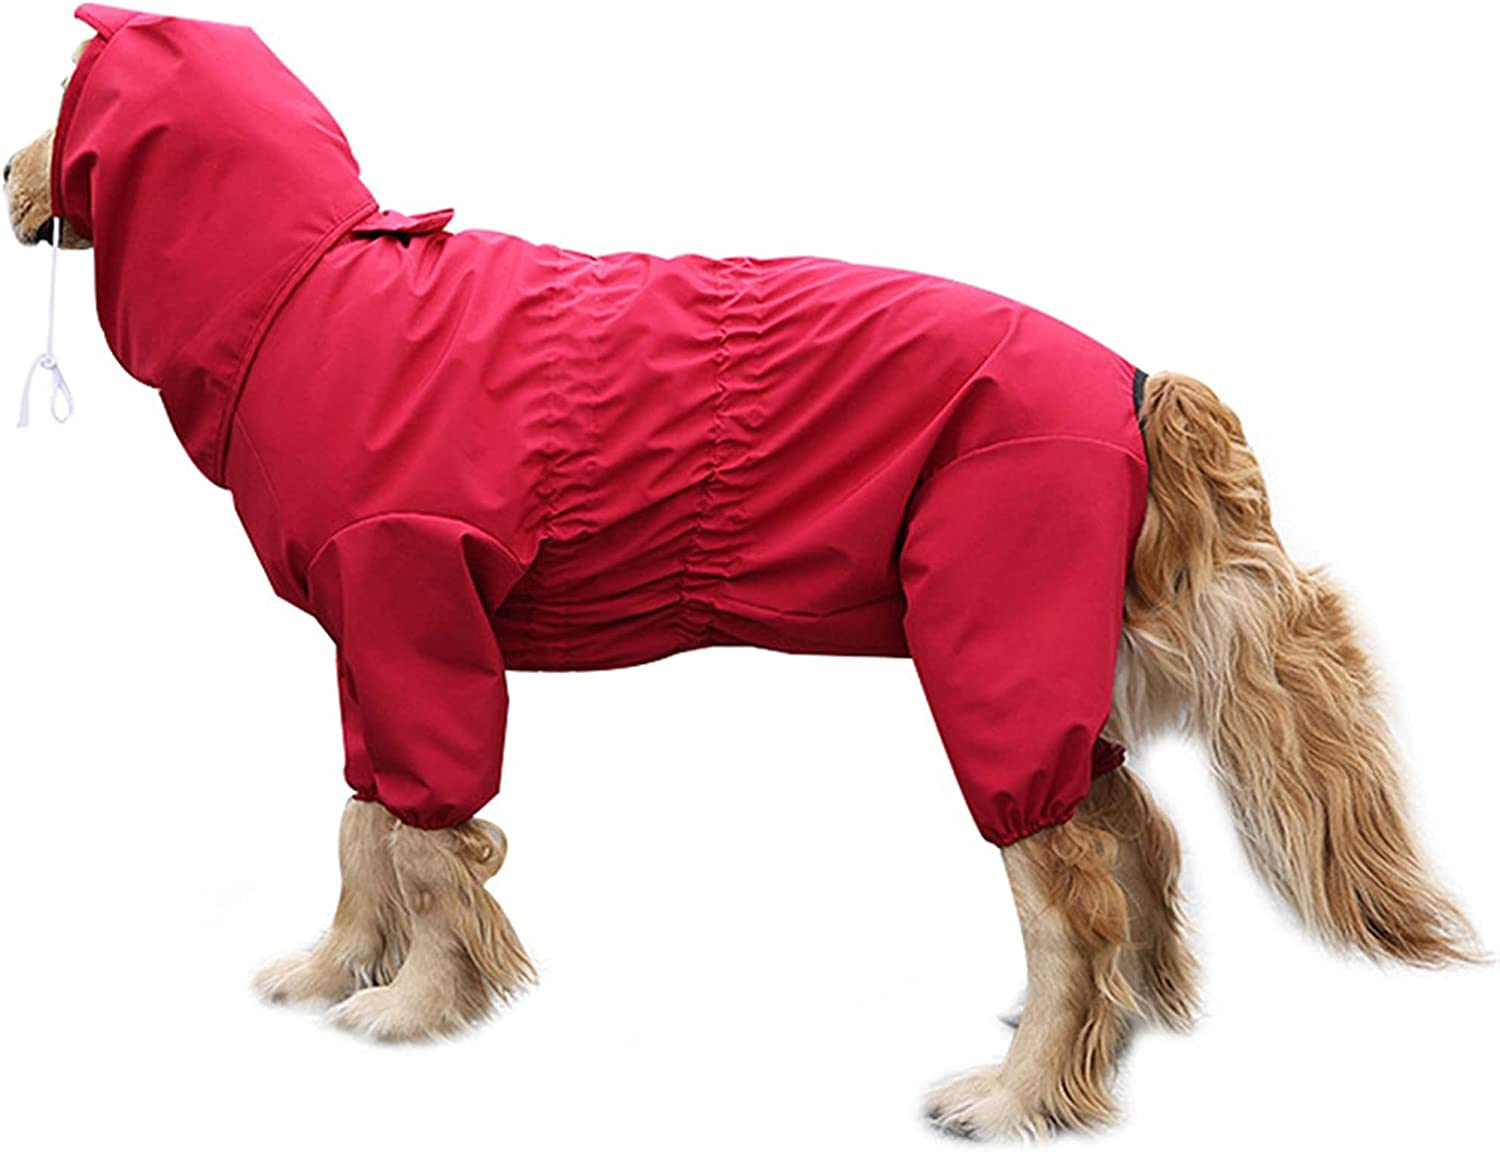 2021 Long-awaited new XHZDWJ Dog Raincoat Poncho,Whole Water Hooded Package